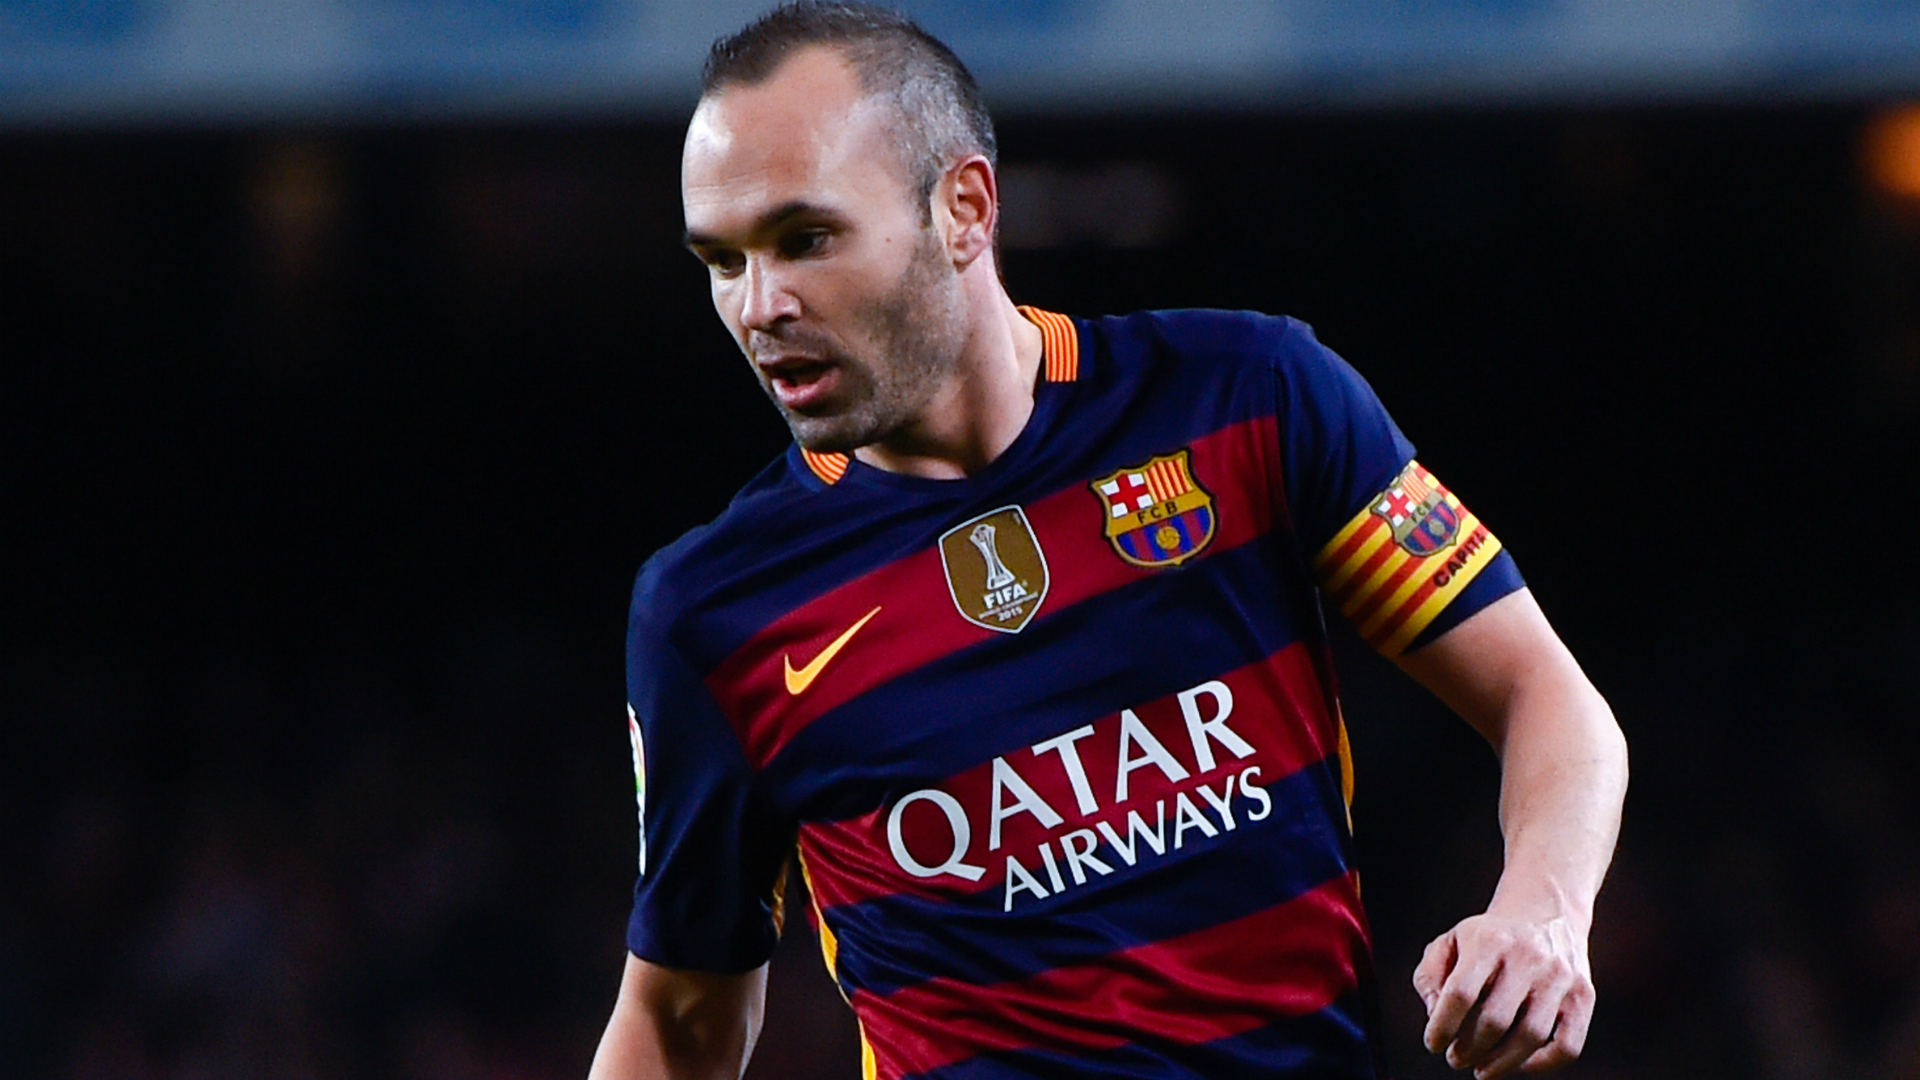 Cute Cartoon Wallpapers For Pc Andres Iniesta Wallpapers